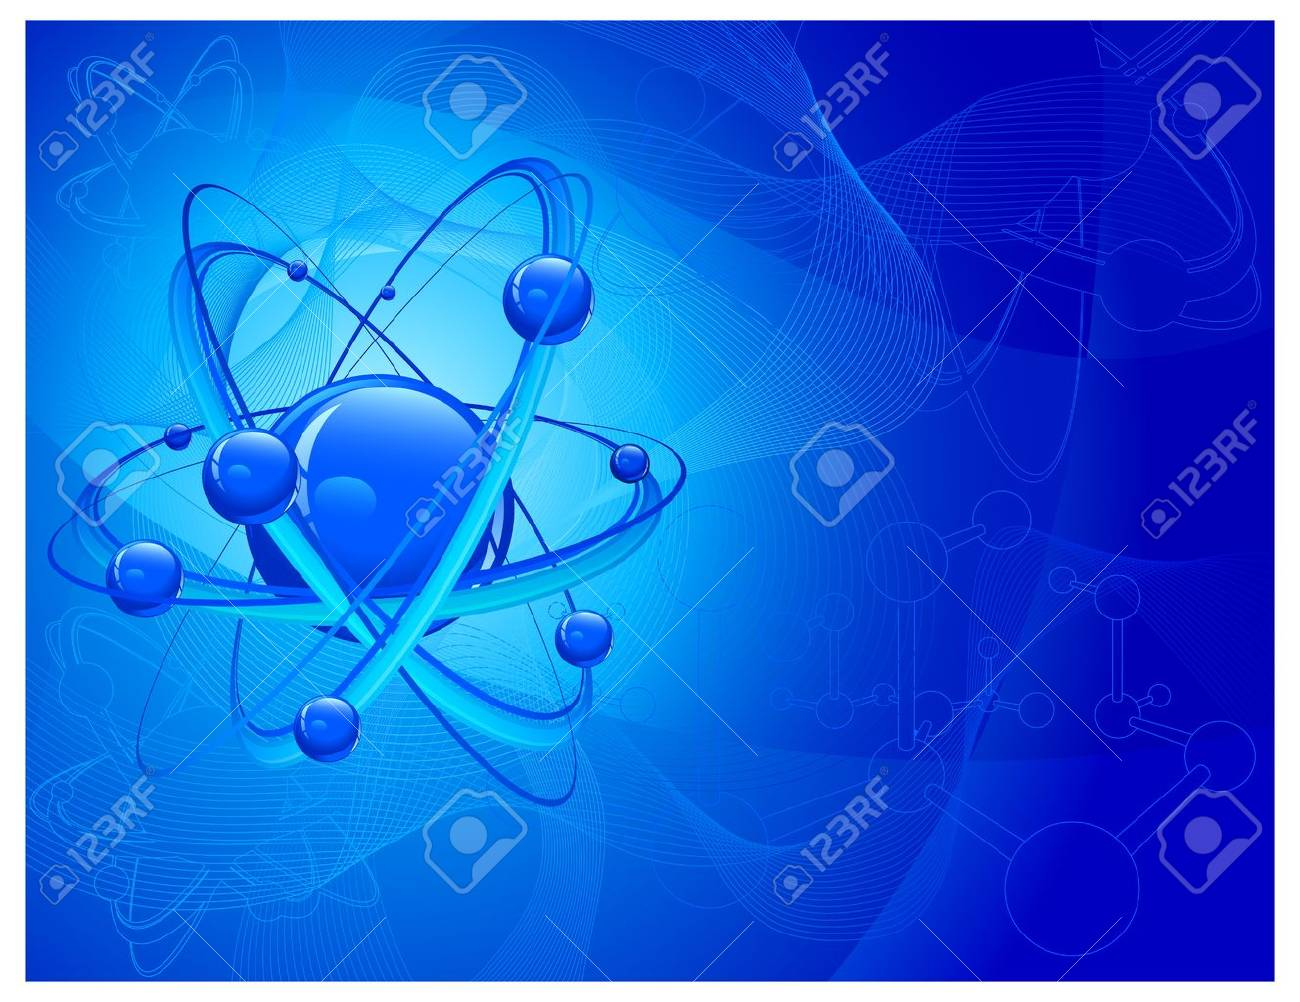 Central nucleus surrounded by electrons on molecular background in blue, vector illustration Stock Vector - 10857093